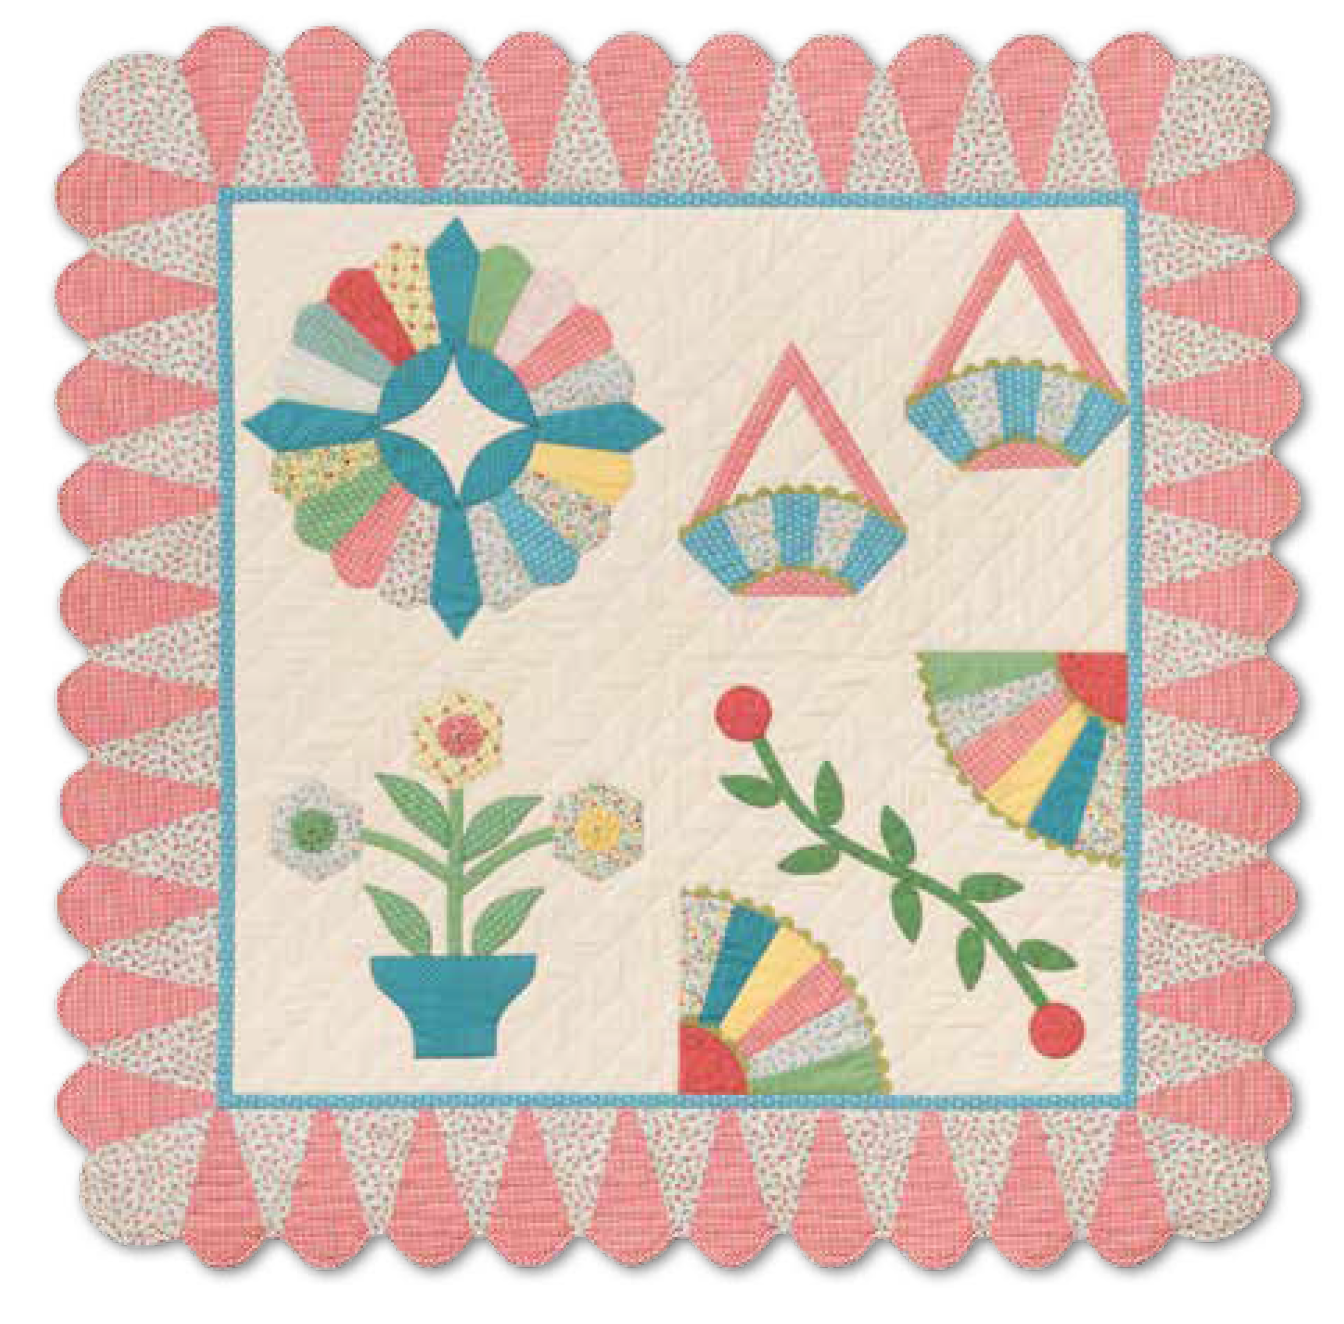 Eleanor burns ice cream cone border templates details ice cream cone border templates maxwellsz